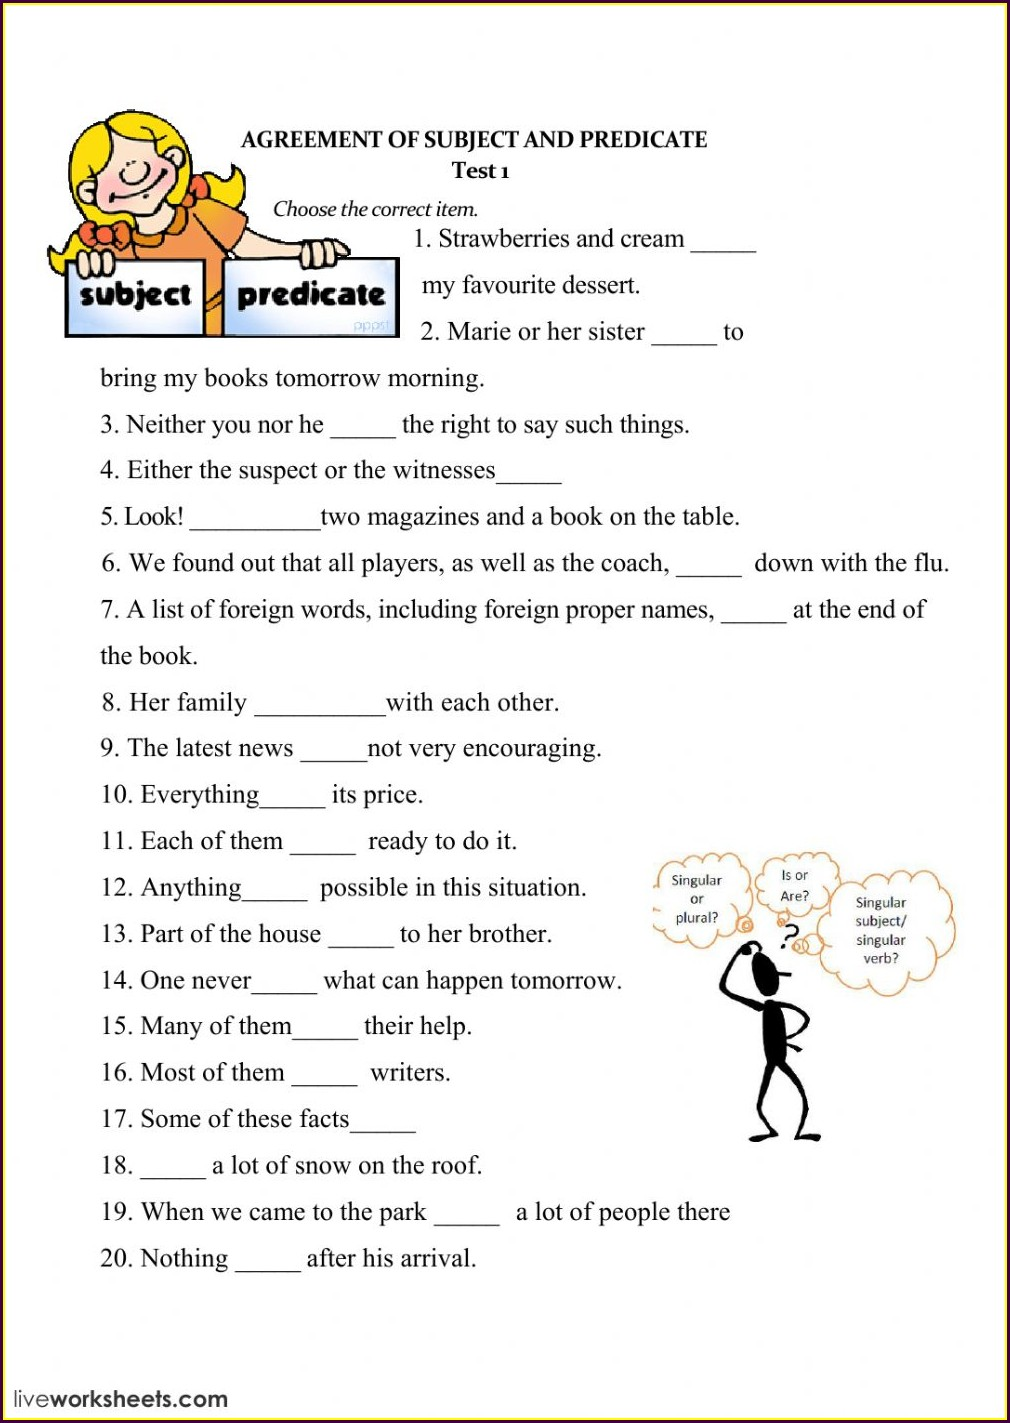 Worksheet On Subject Verb Agreement For Grade 2